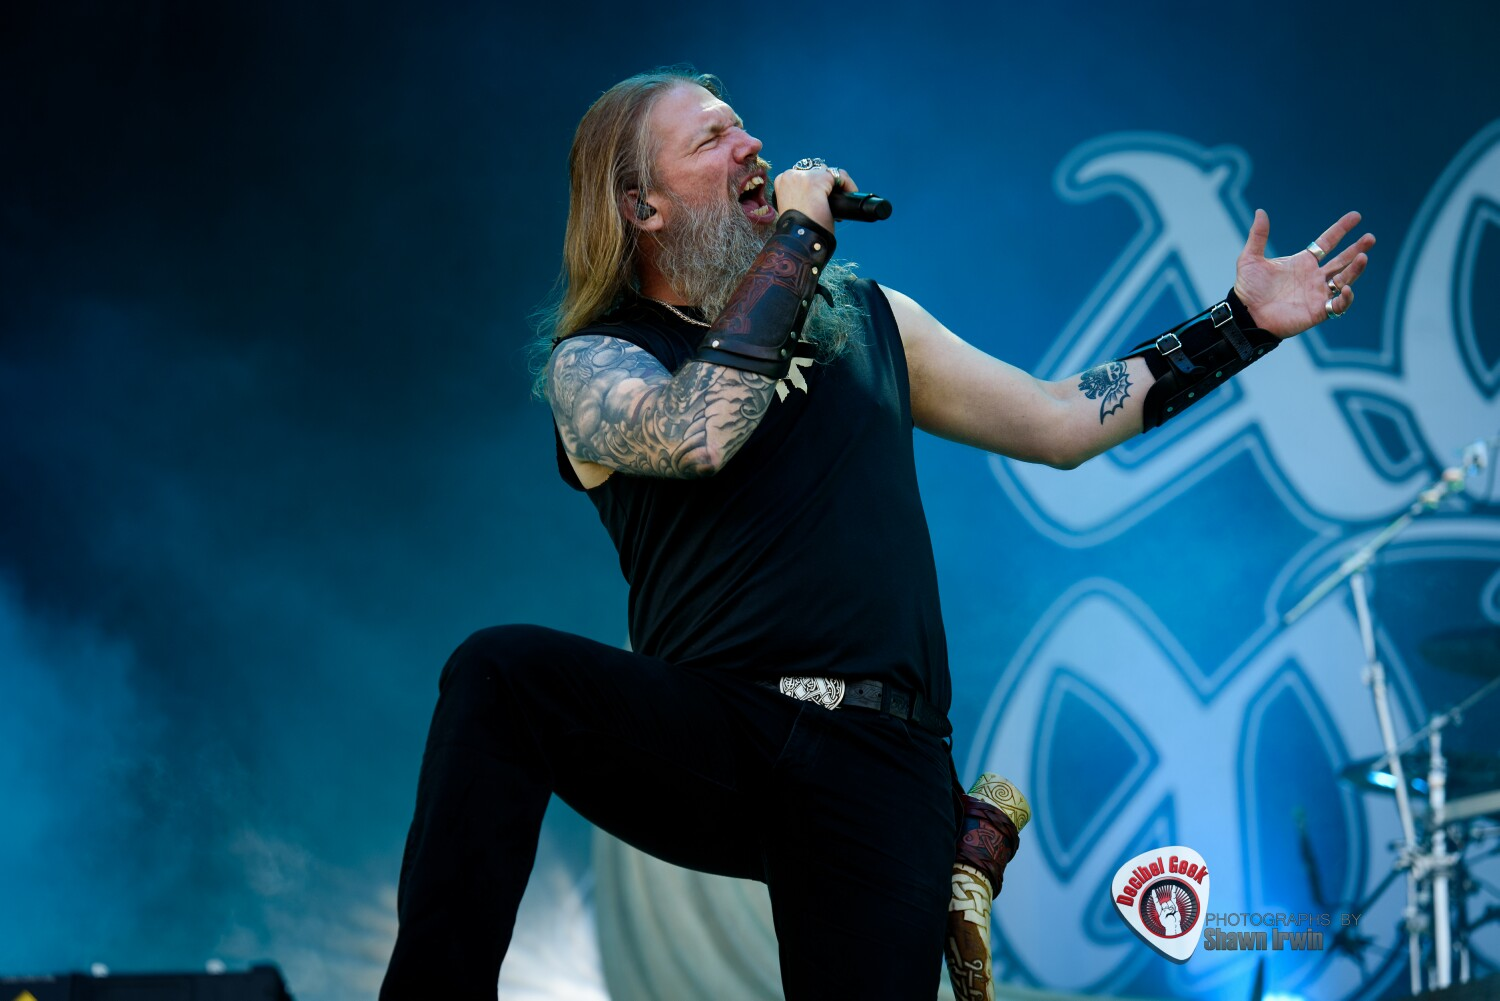 Amon Amarth #1-Sweden Rock 2019-Shawn Irwin